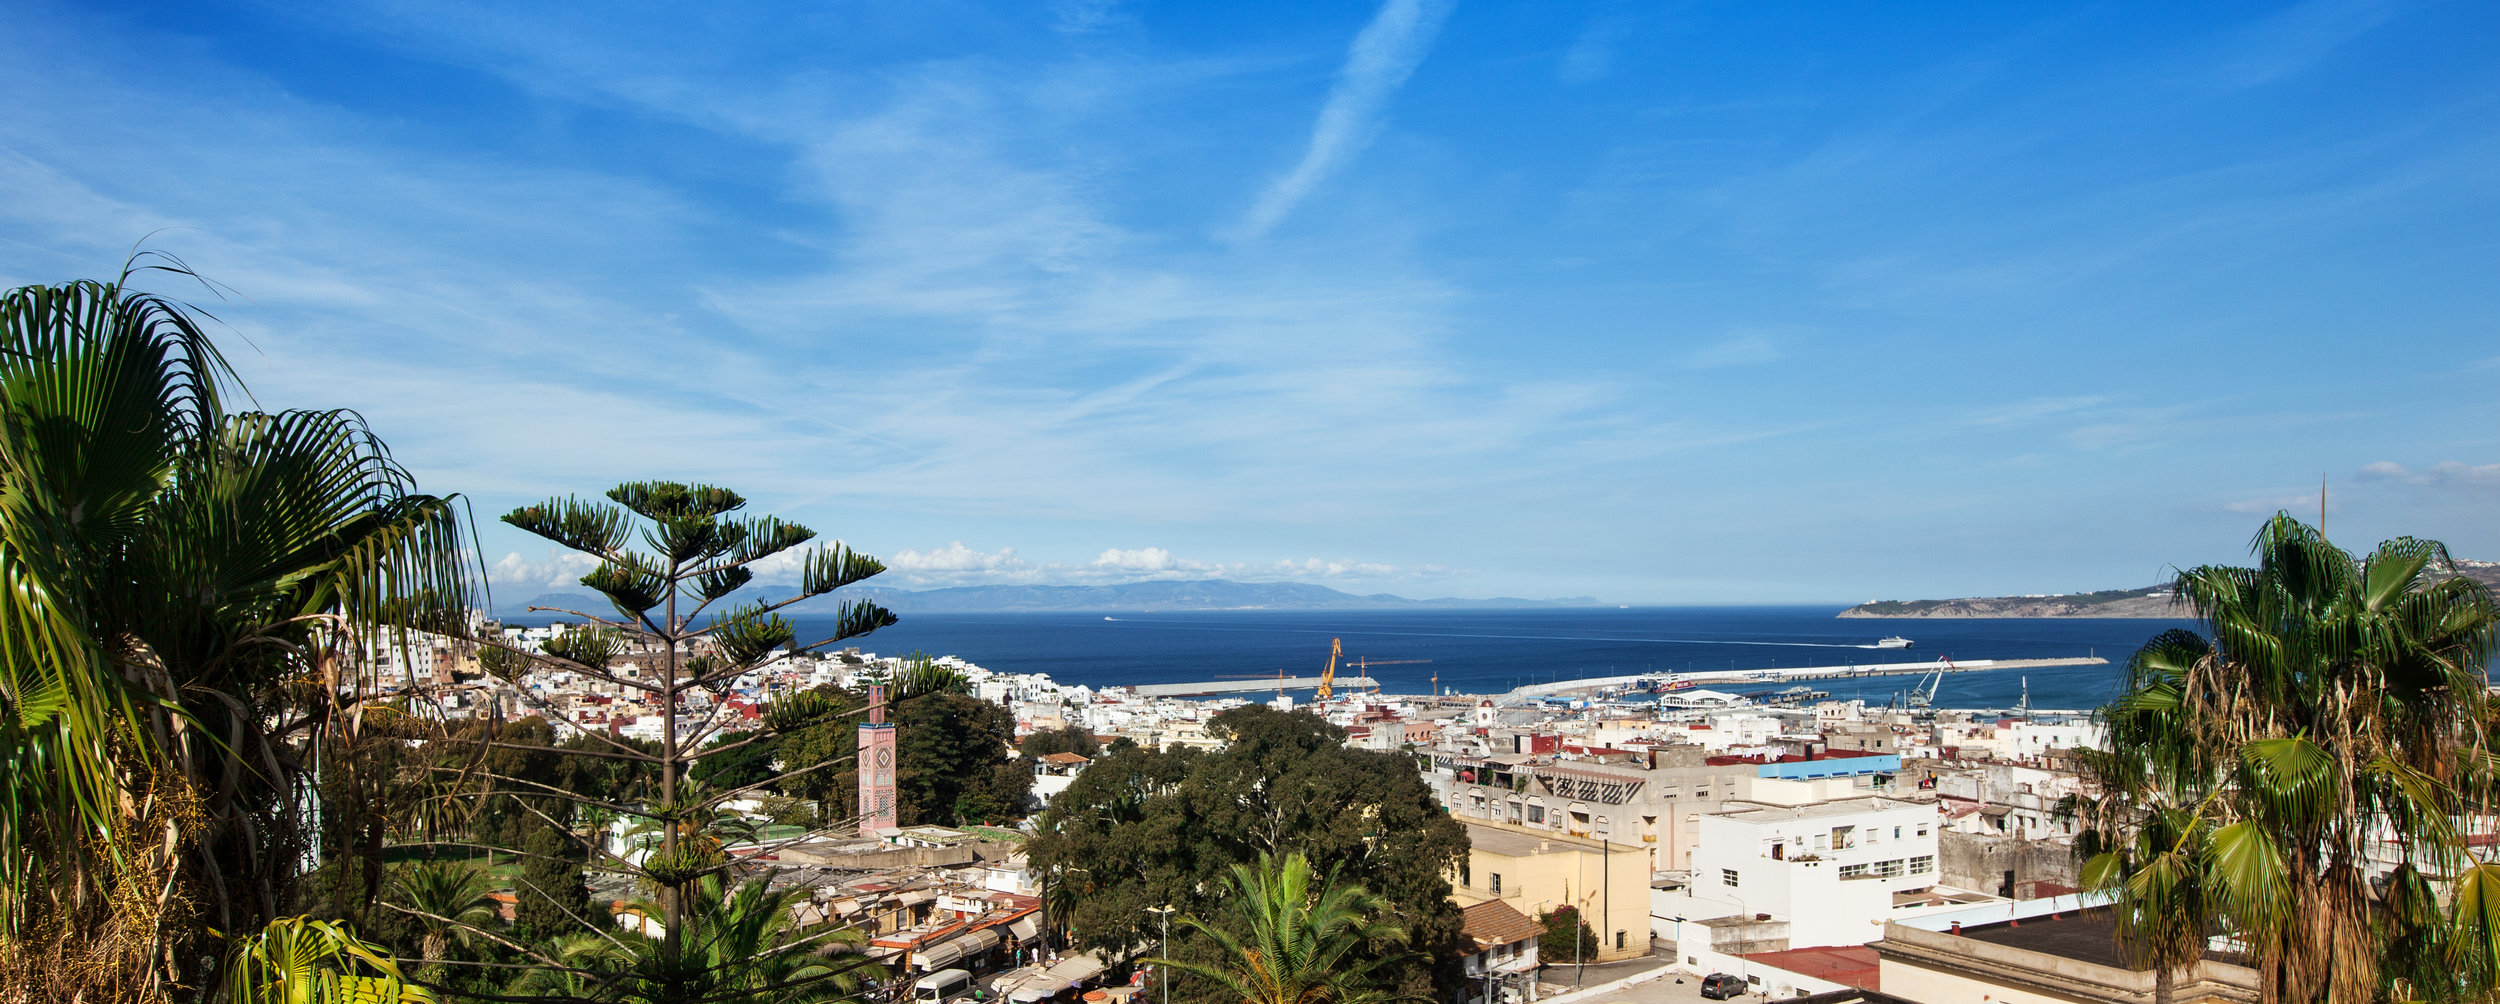 A Matisse view of Tangier looking out over the medina to the port and the coast of Spain